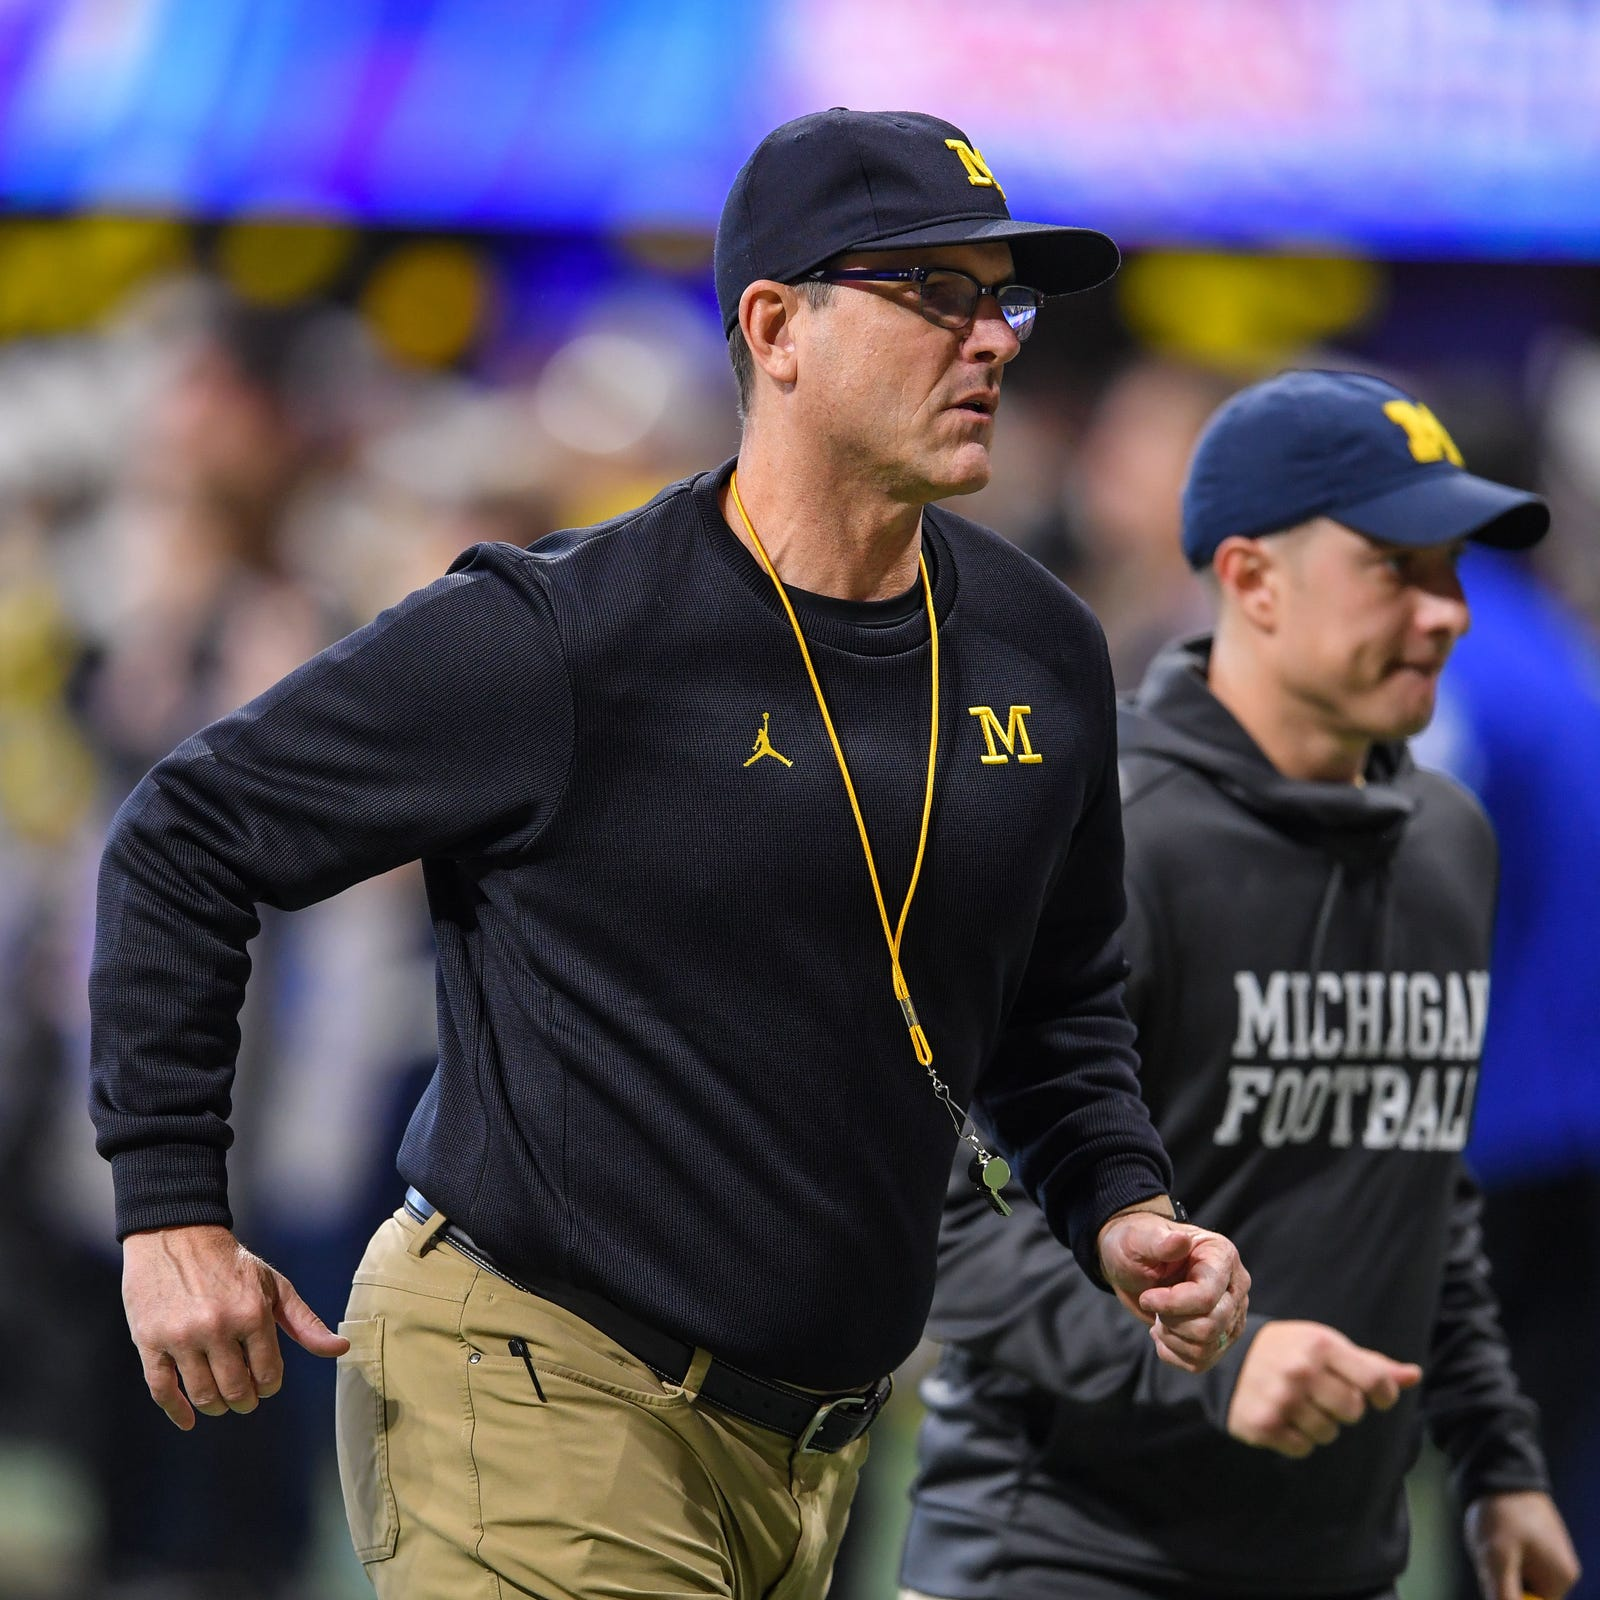 The Michigan Rant: Jim Harbaugh has an OC, what's it mean?